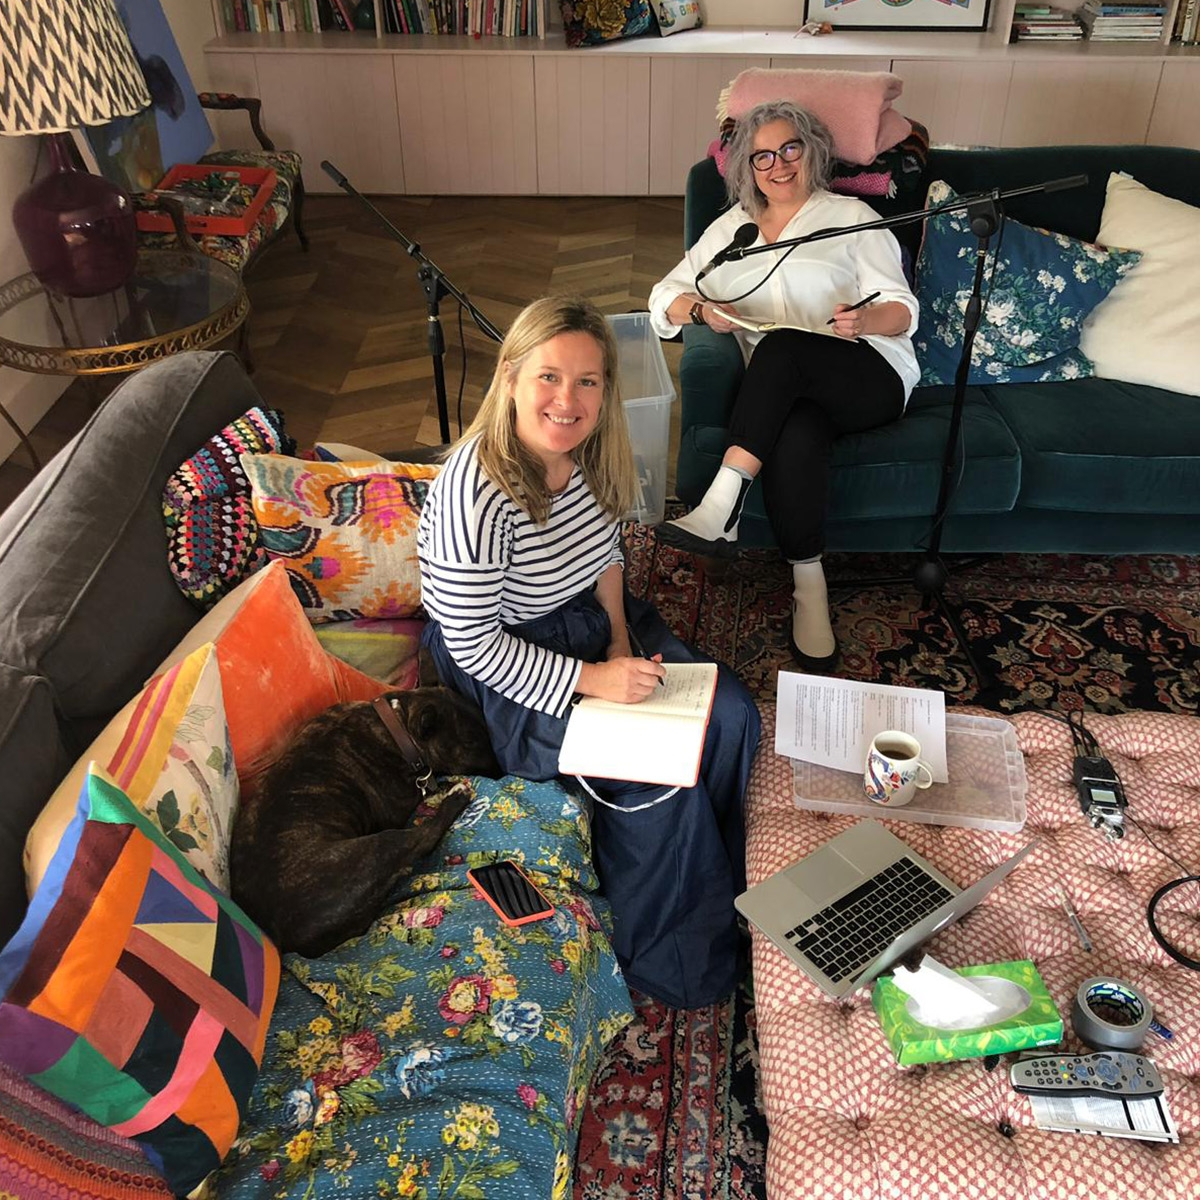 Sophie Robinson and Kate Watson-Smyth record the third series of the Great Indoors podcast as Sophie's house. The living room has built in storage painted in a soft pink and the patterned rugs introduce pattern and texture. #sophierobinson #livingroom #patternedrug